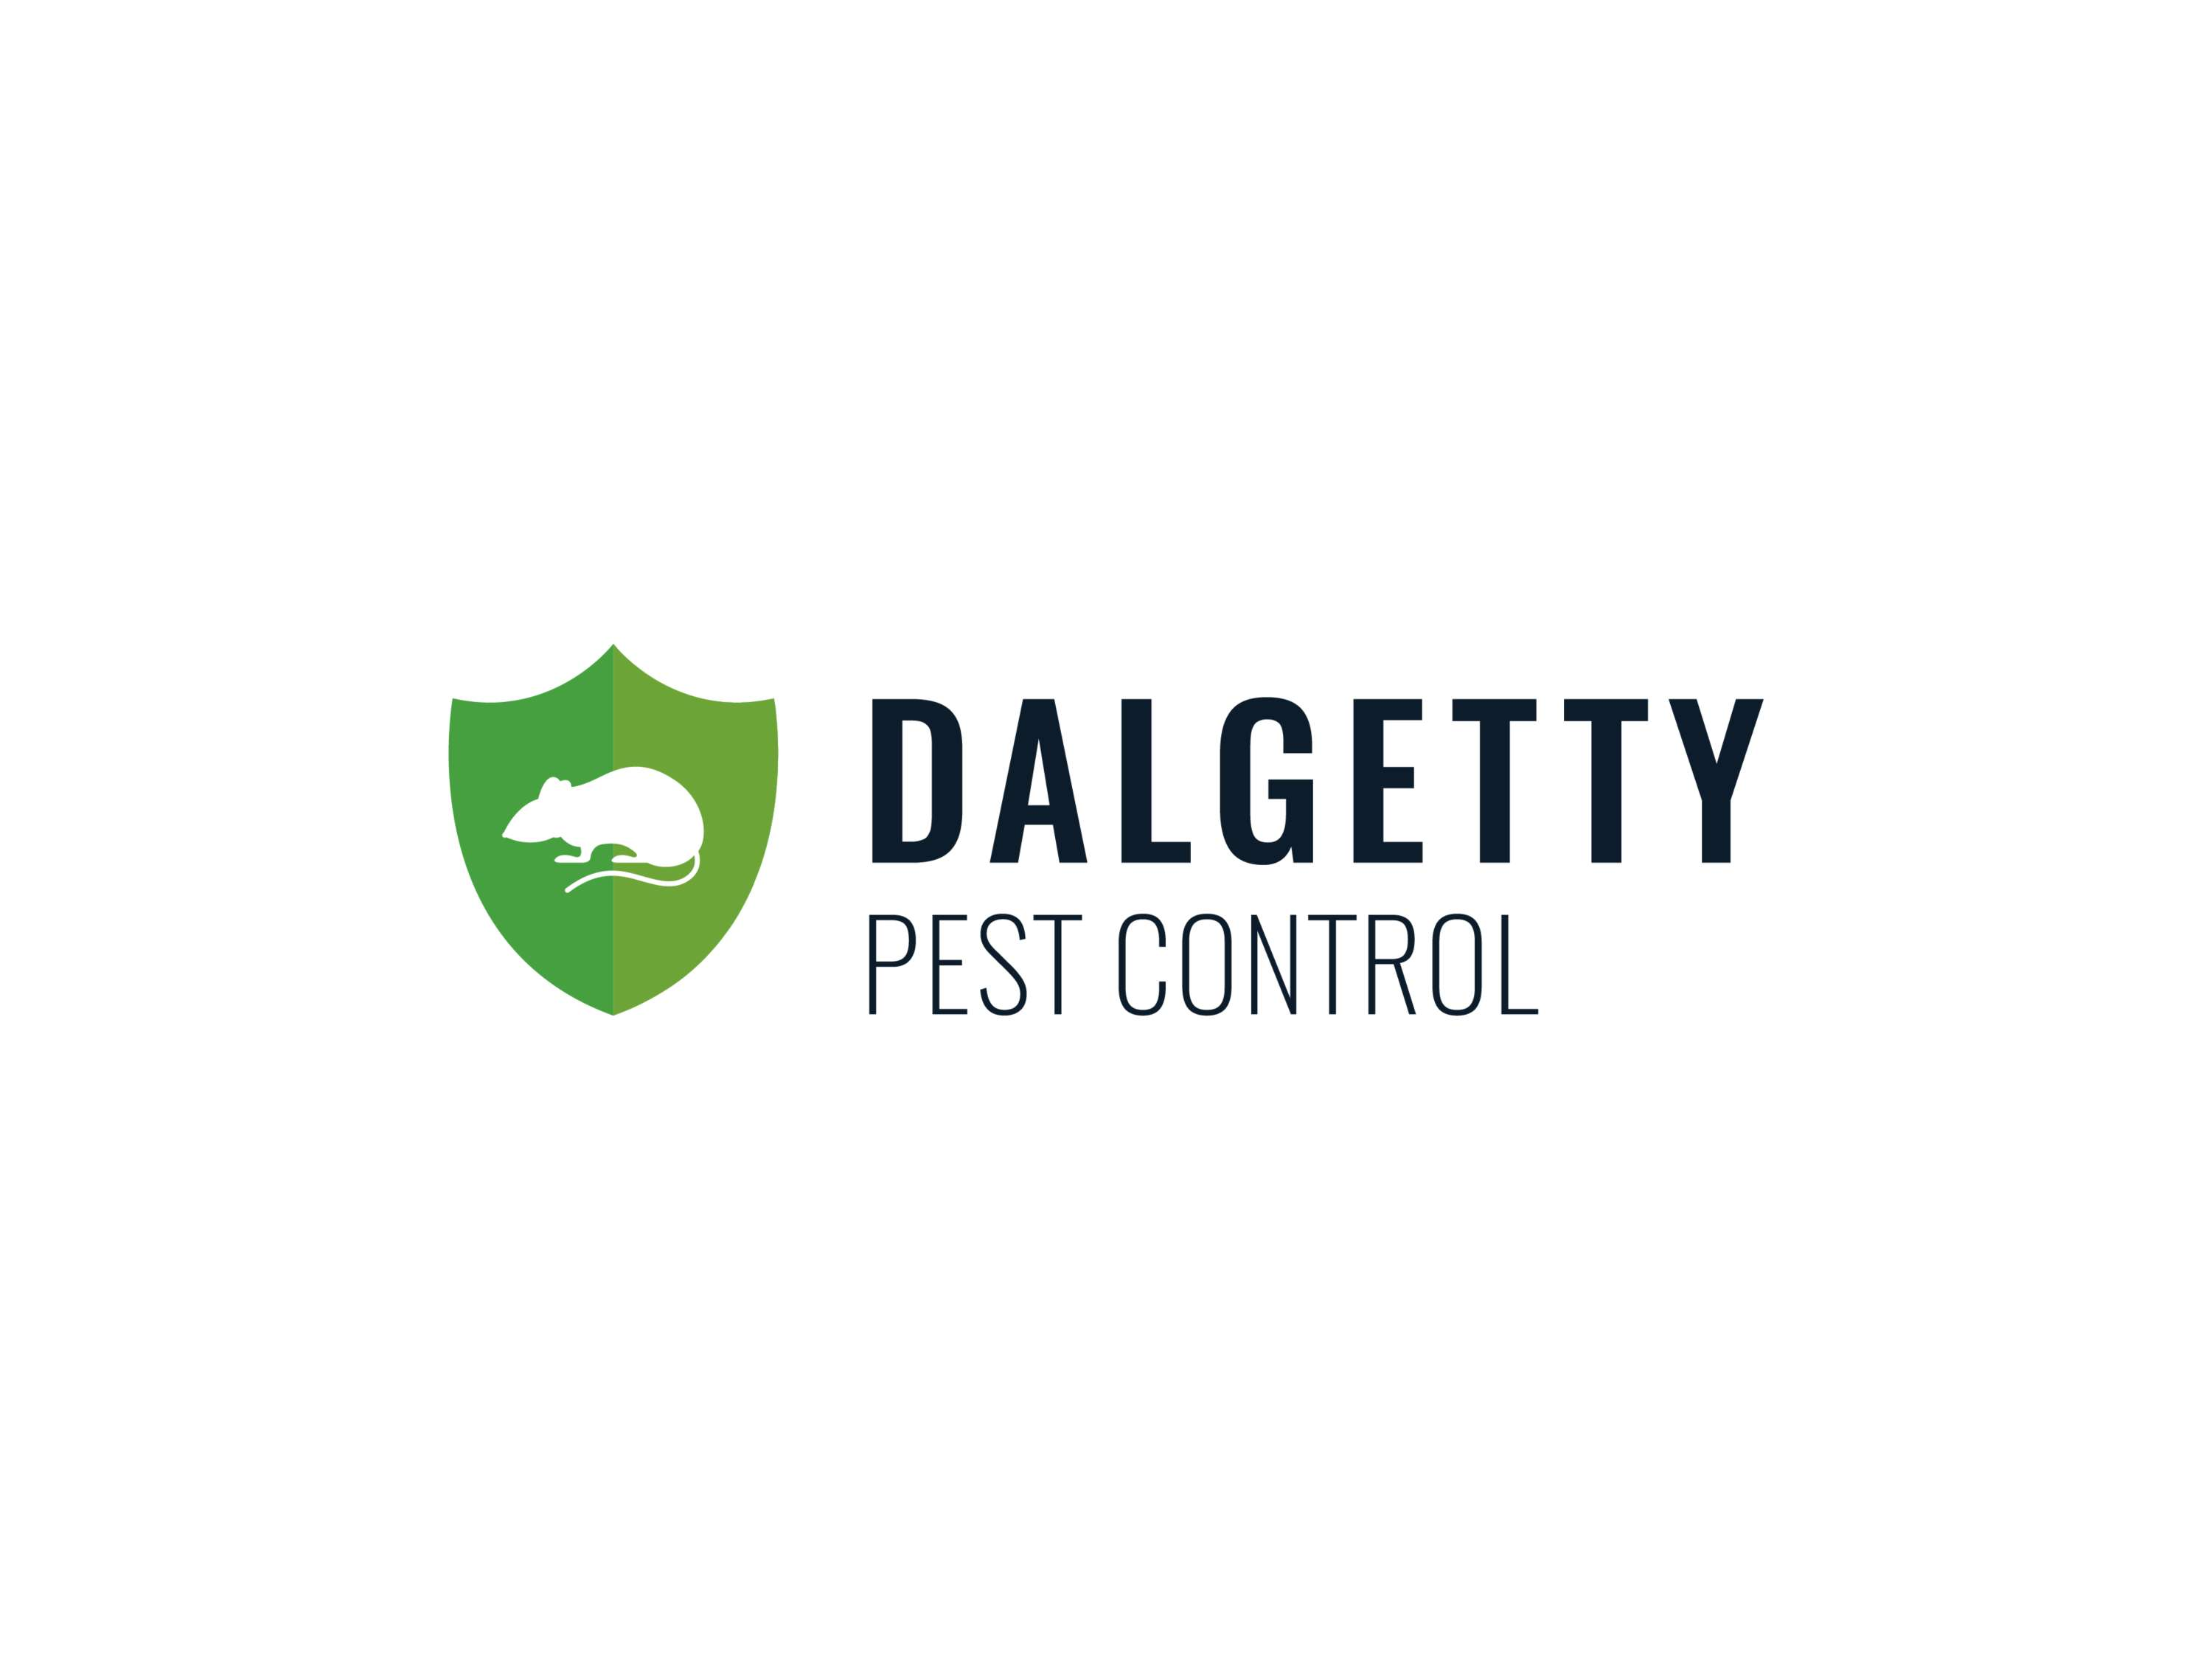 dal ty pest control branding website